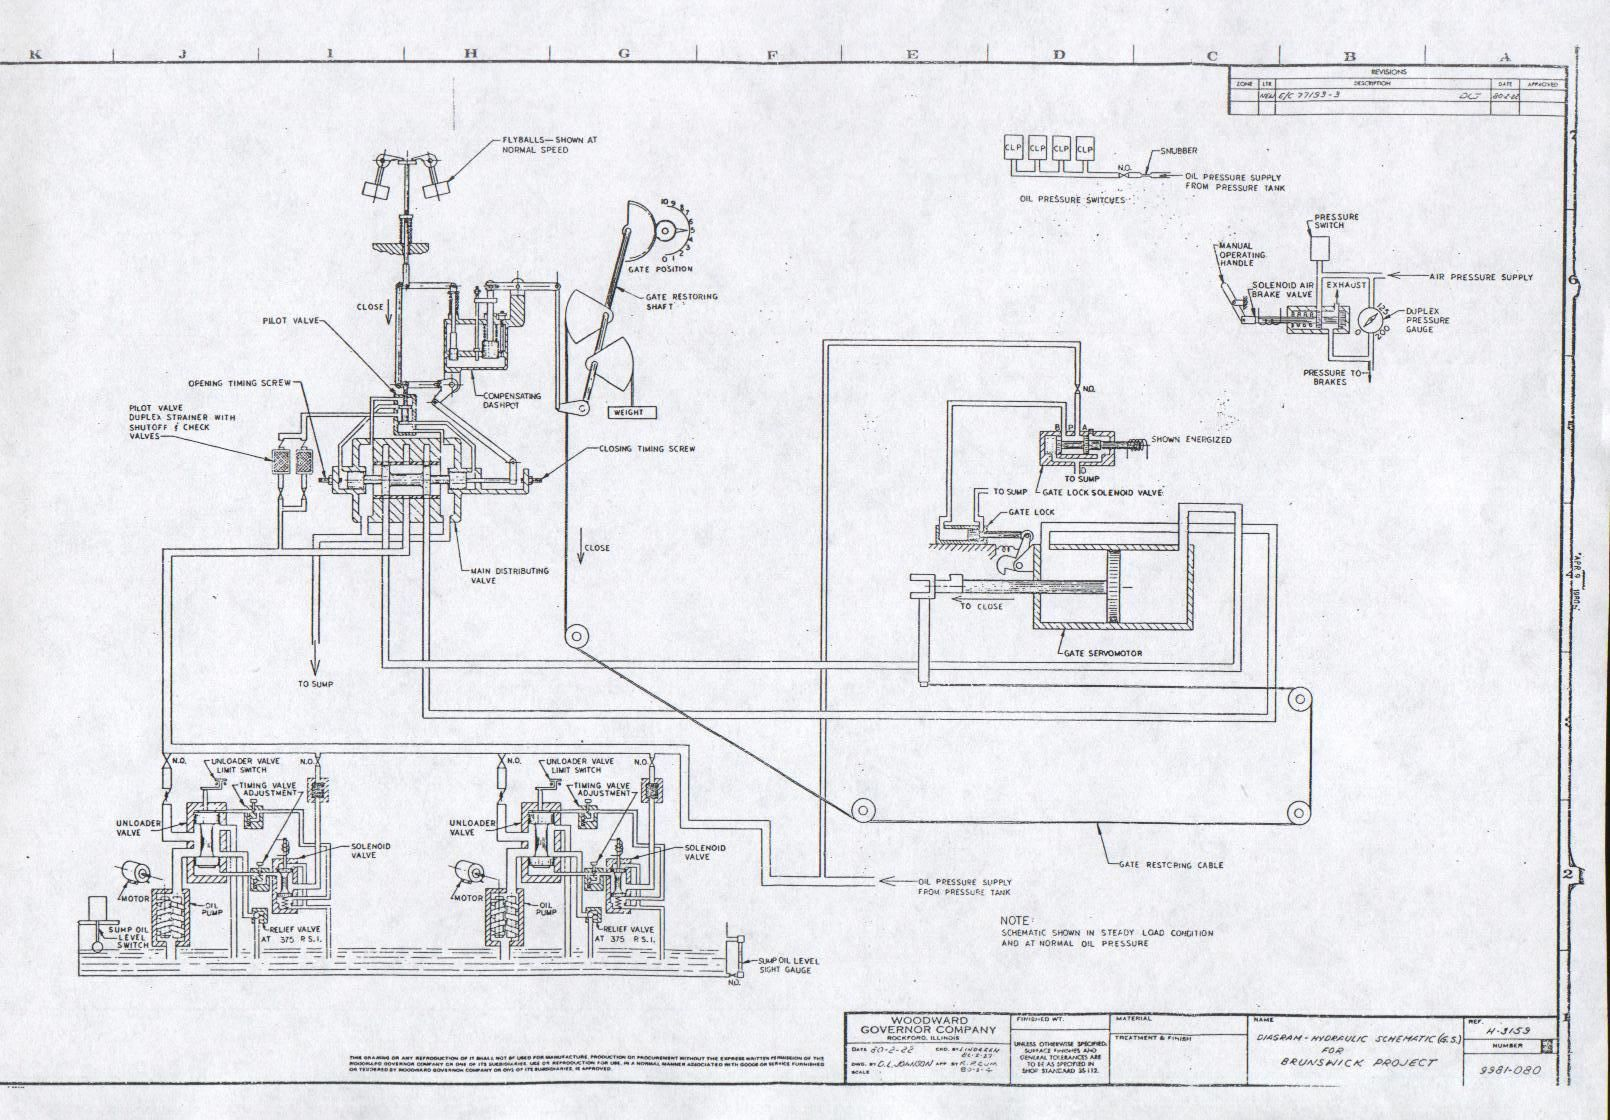 Woodward Turbine Water Wheel Governor Control System